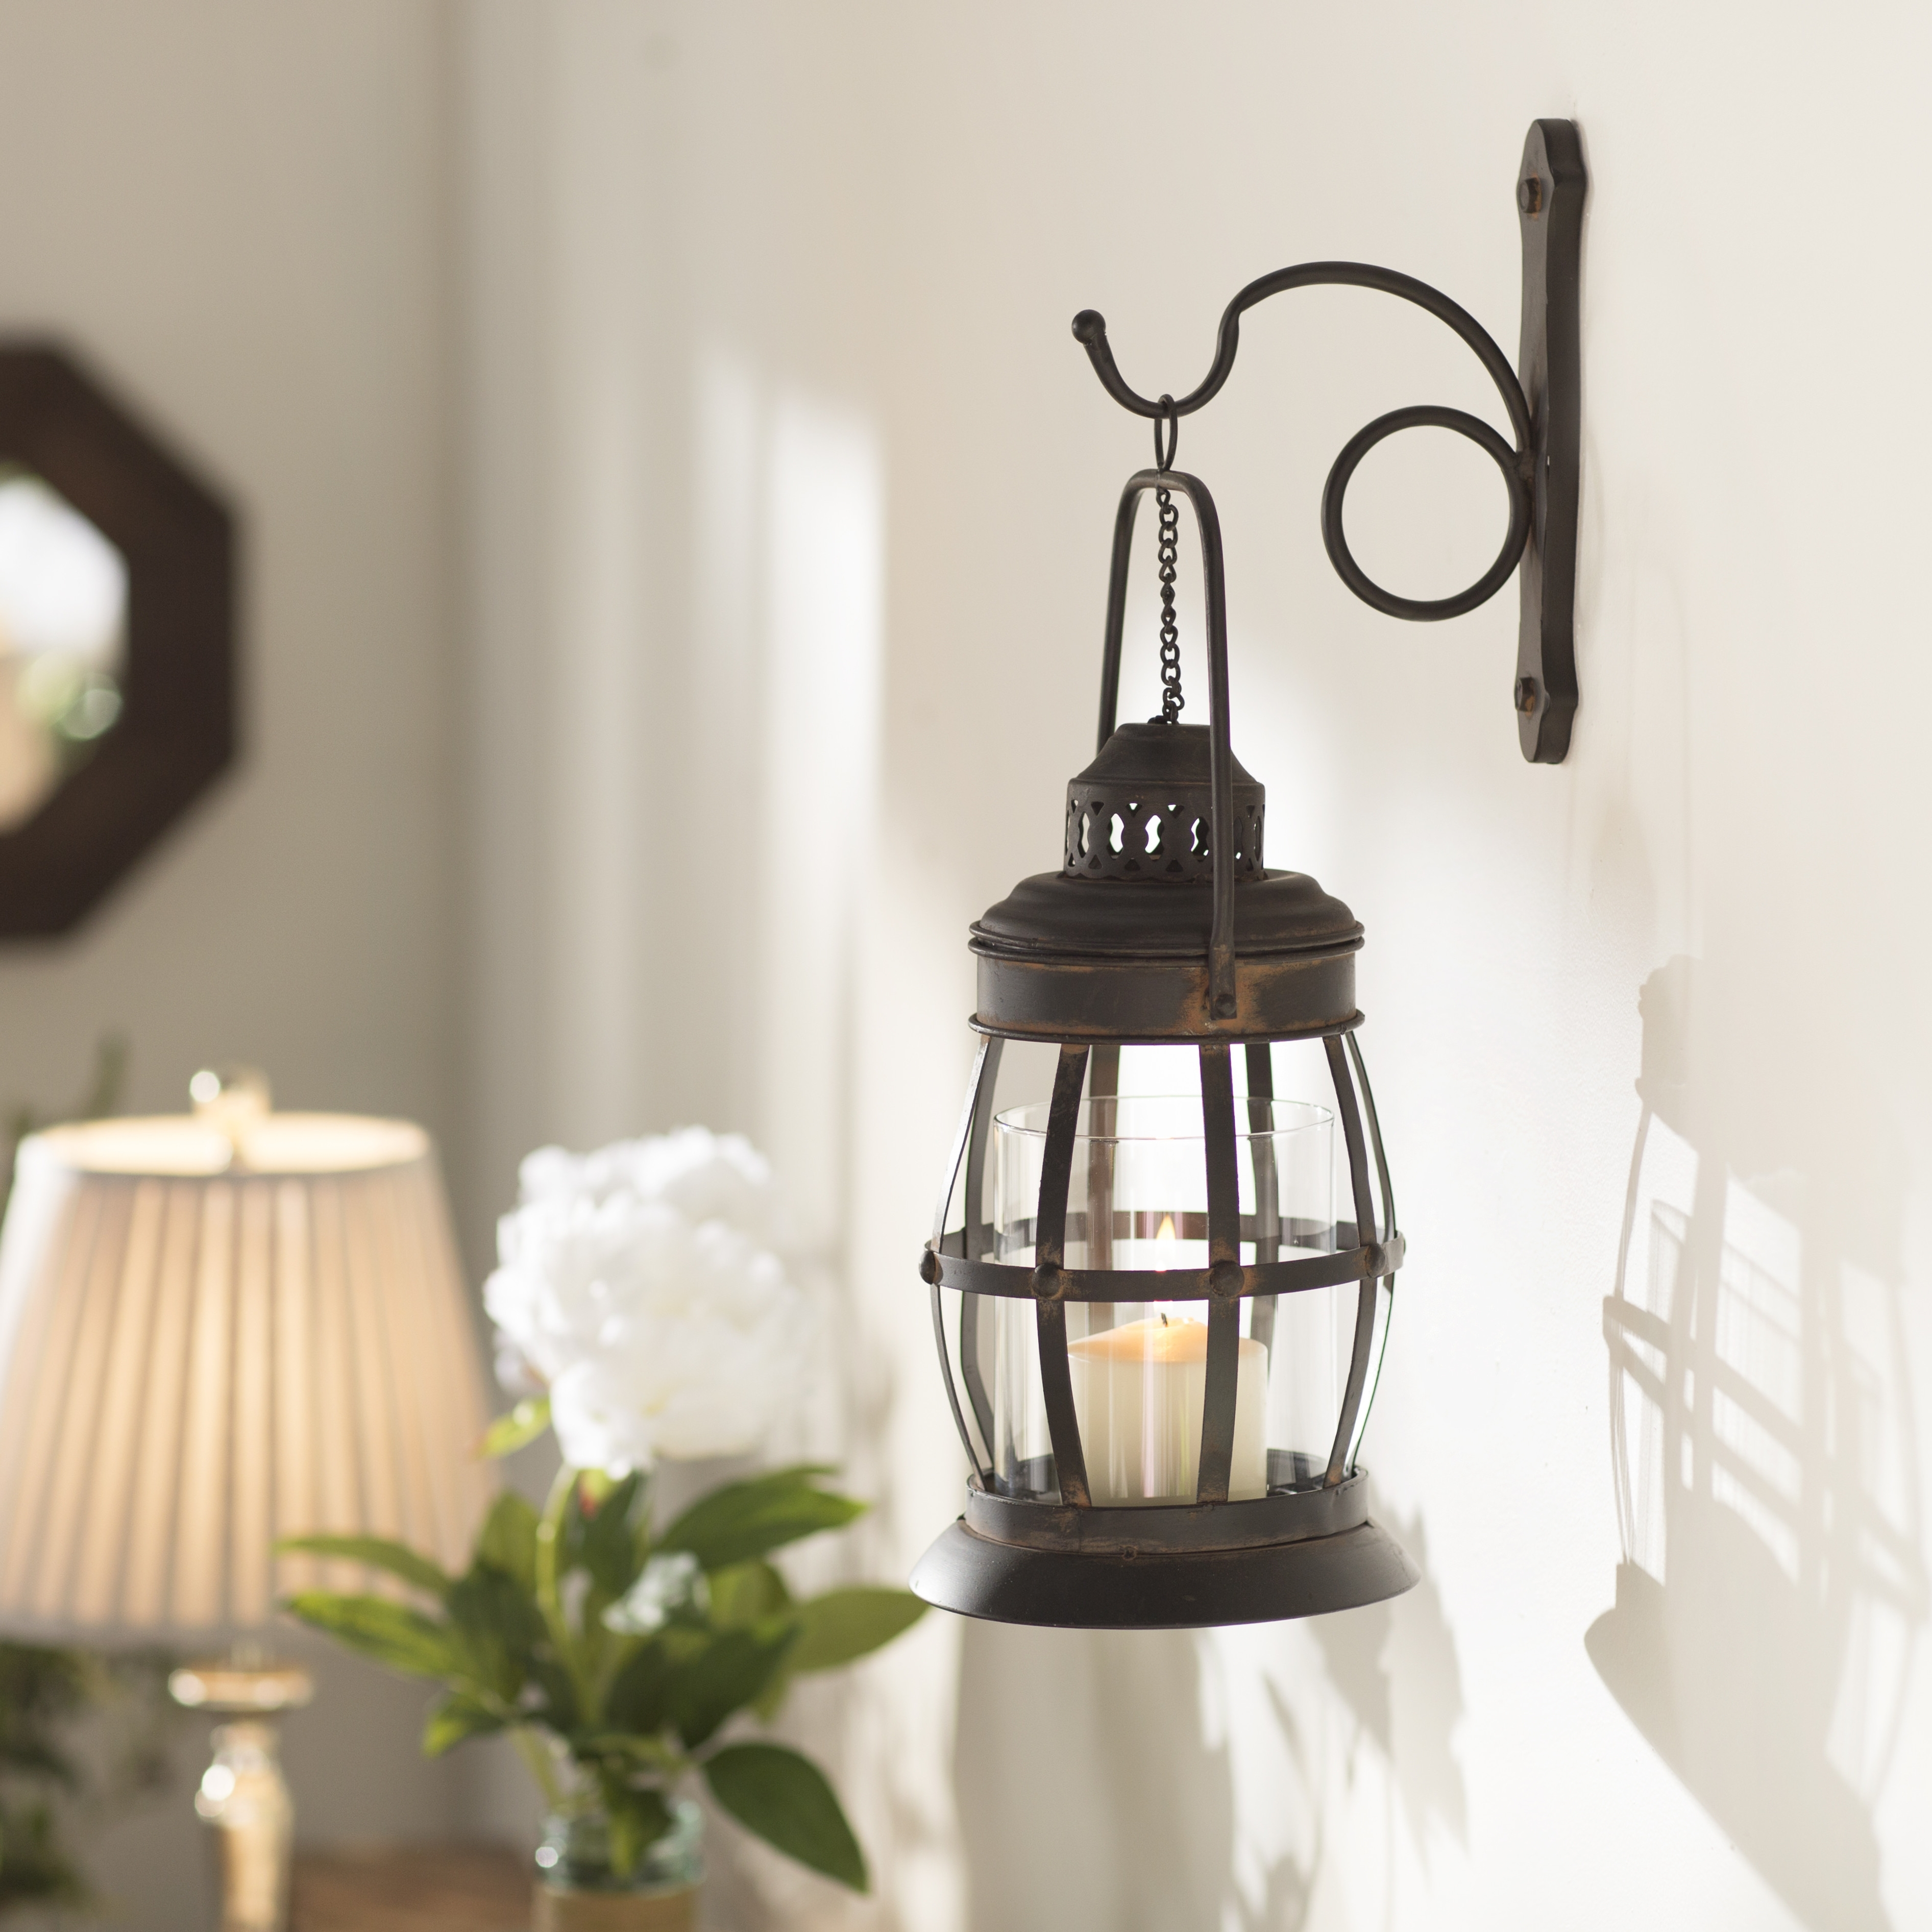 Lamps Plus Outdoor Ceiling Lights Inside 2019 Lamps Design : Lighting Superstore Lamps Plus Ceiling Fans Metal (View 20 of 20)